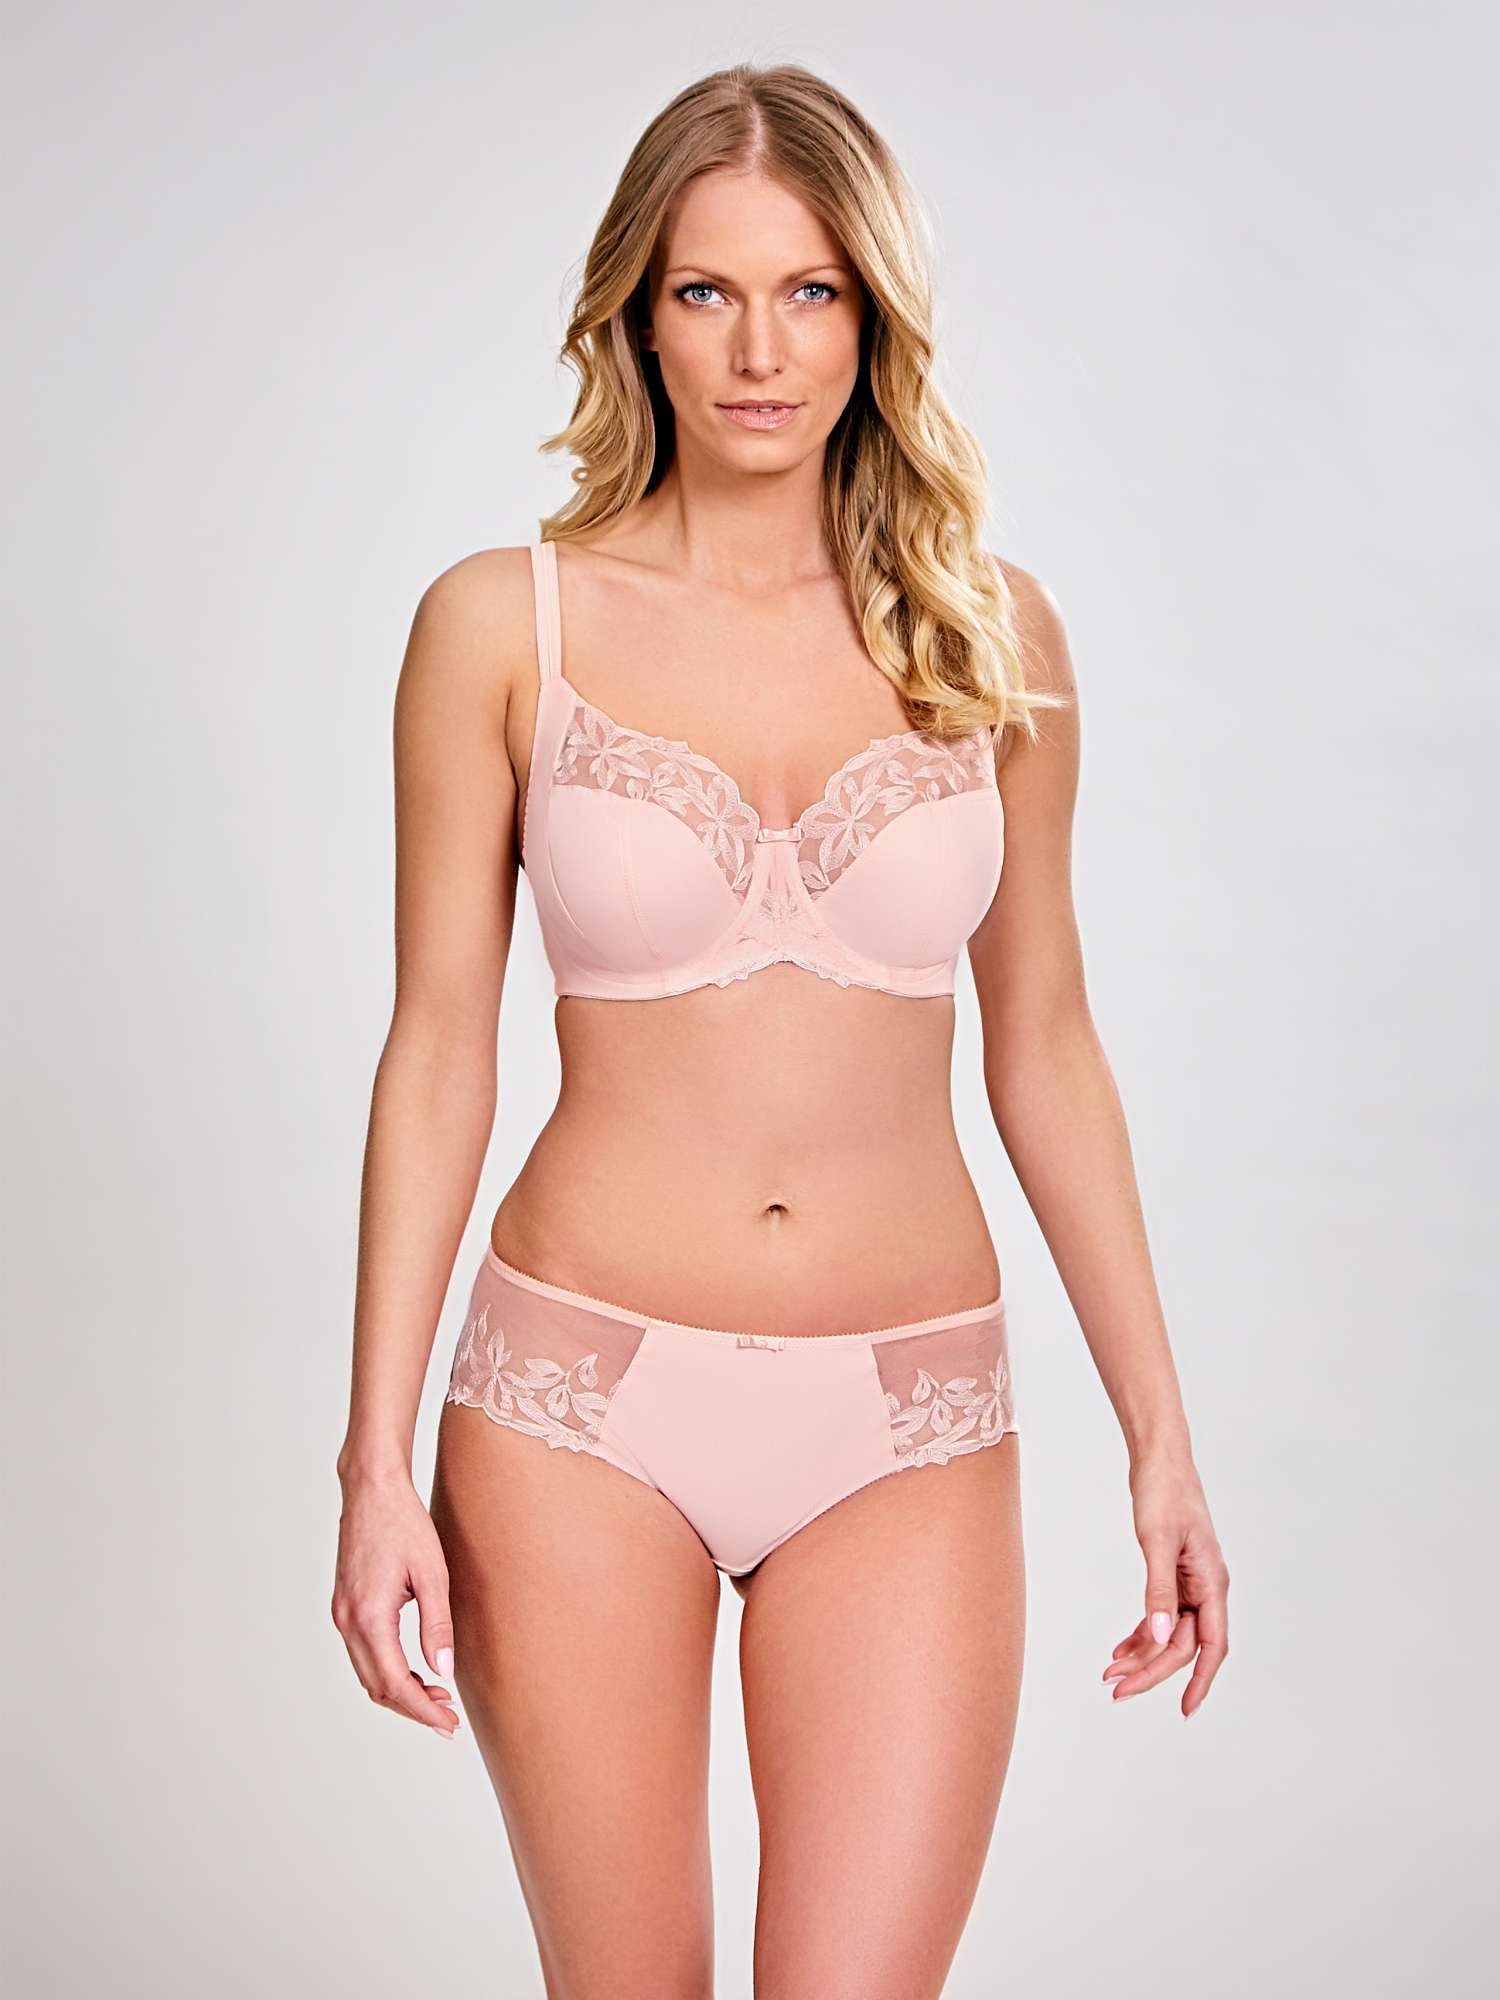 9587210691 Penny full cup panache lingerie jpg 1500x2000 Natural 36j cups